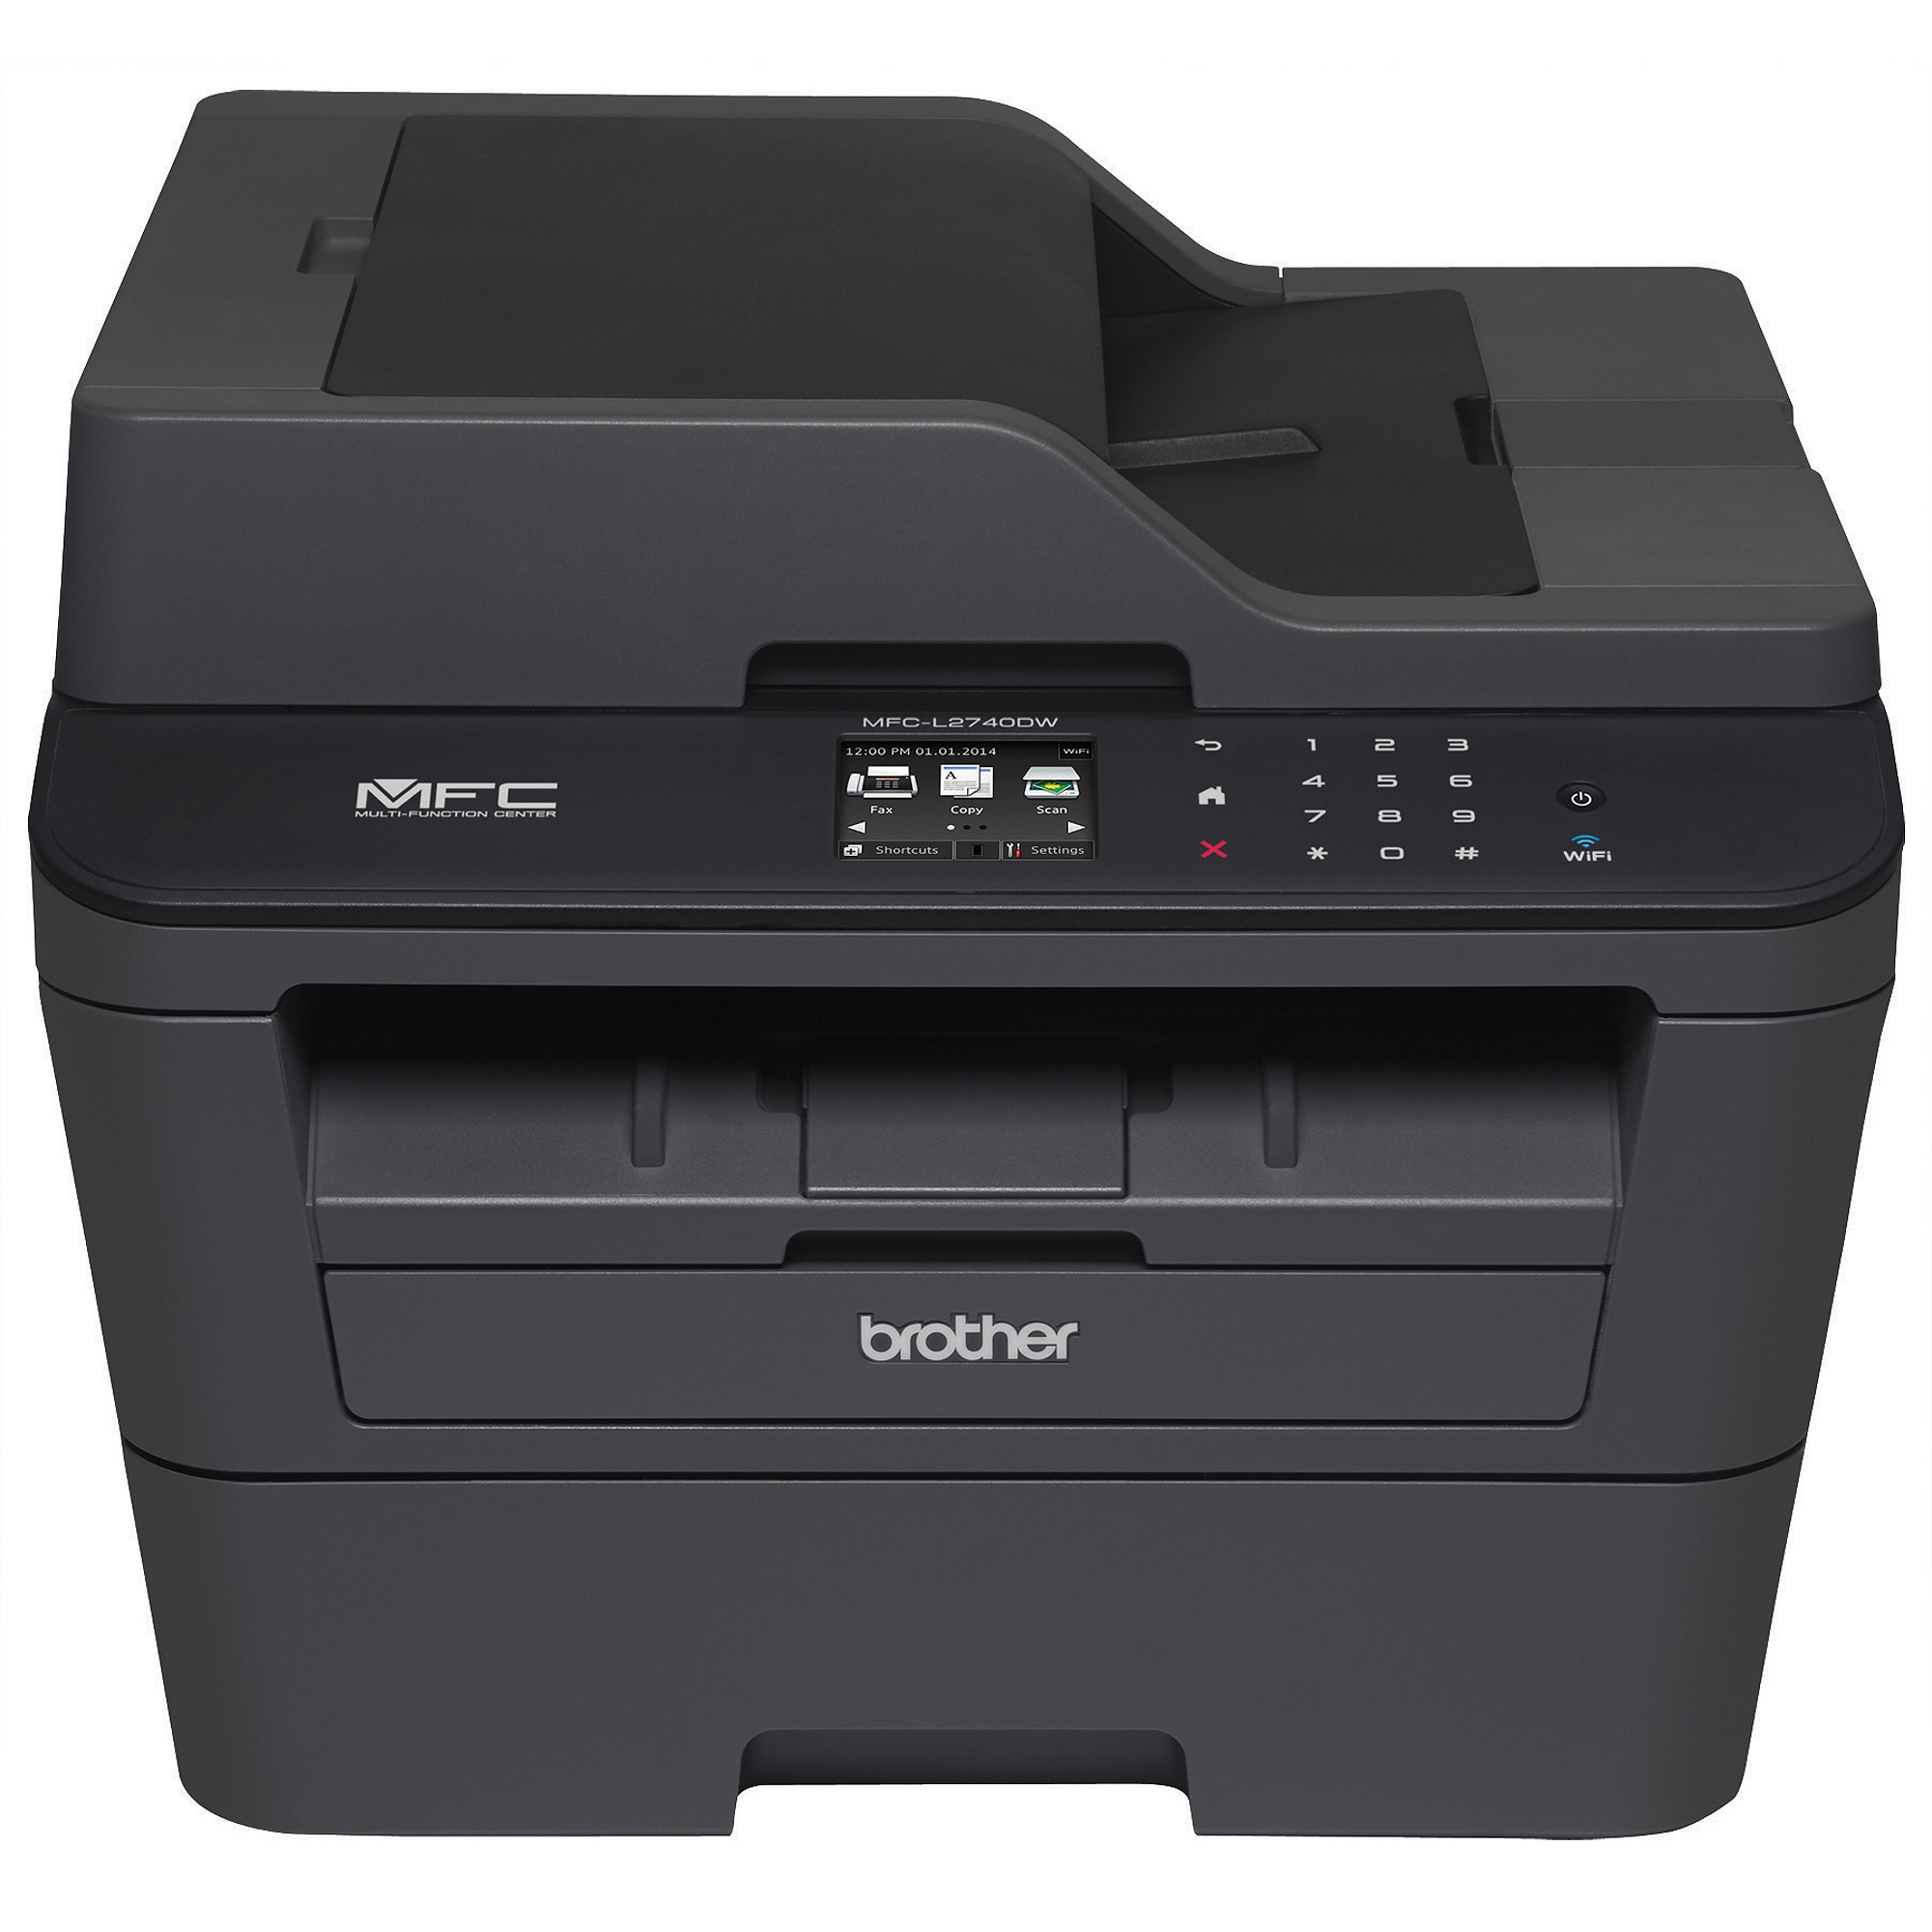 Brother MFC-L2740DW Compact Laser All-in-One Printer/Copier/Scanner/Fax Machine